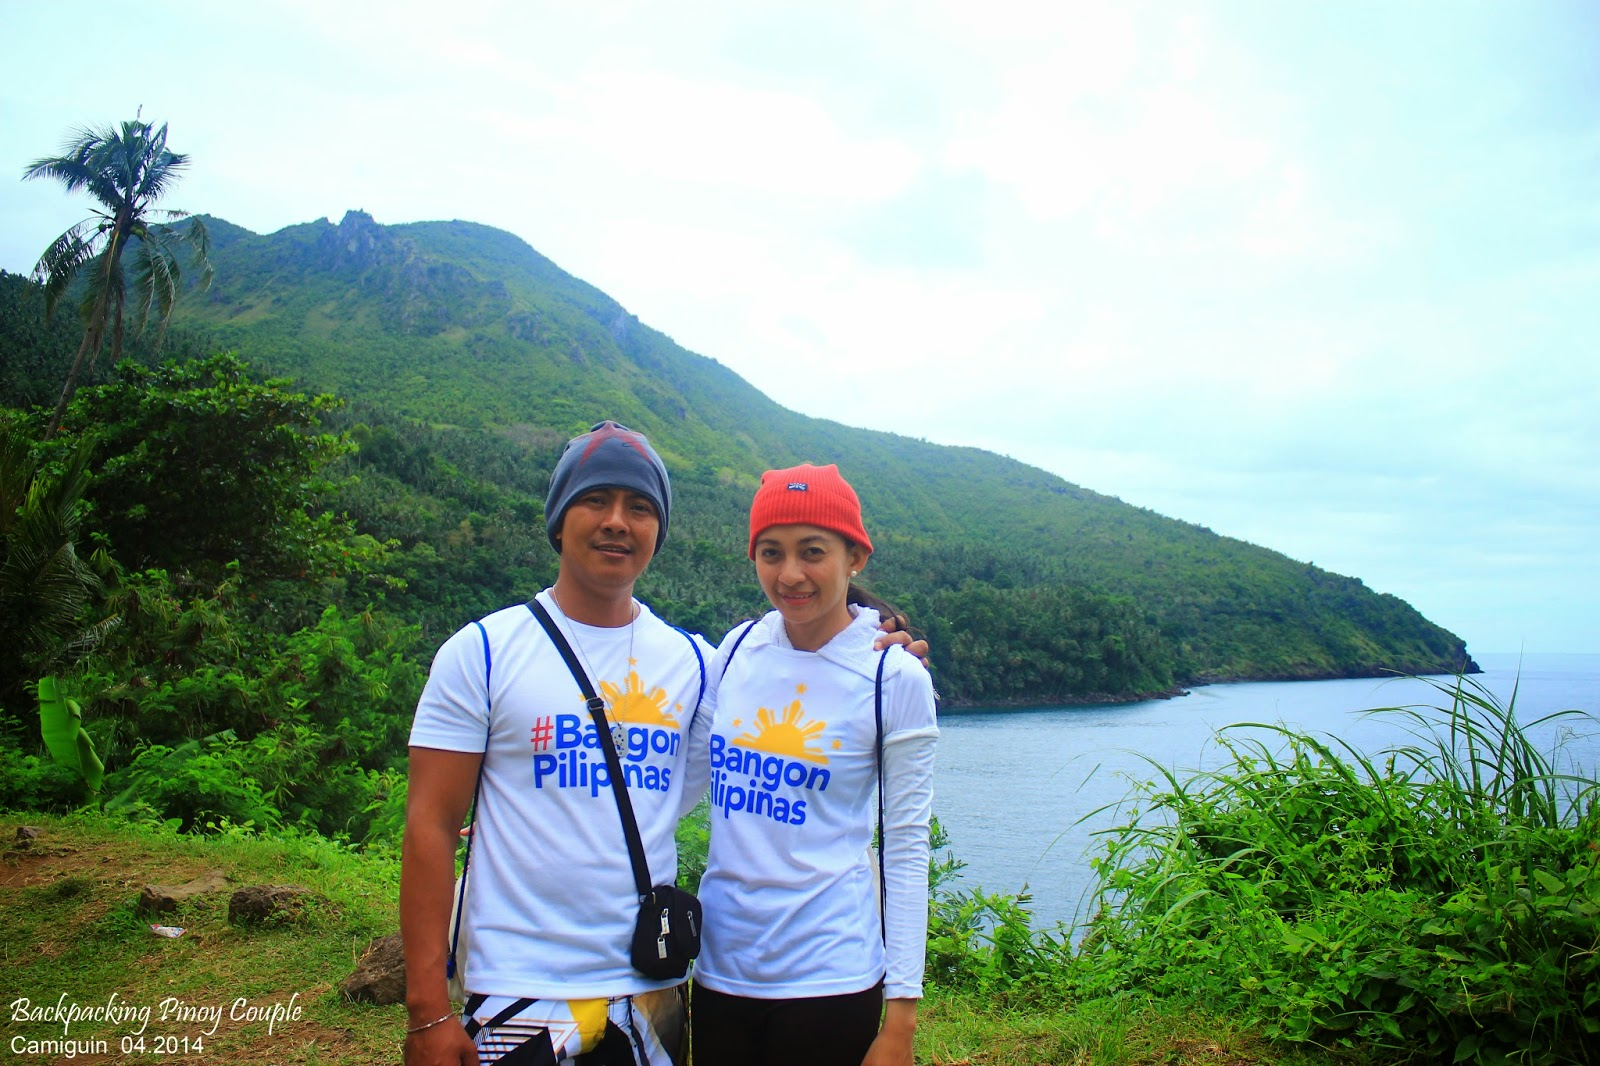 Backpacking Pinoy Couple, Backpacking Philippines, Northern Mindanao, Philippine travel, Camiguin, How to go to Camiguin, what to do in camiguin, where to go in camiguin, Camiguin roadtrip, road trip, Camiguin Itinerary, motor riding in Camiguin, June Correa, Lanie Valler Correa